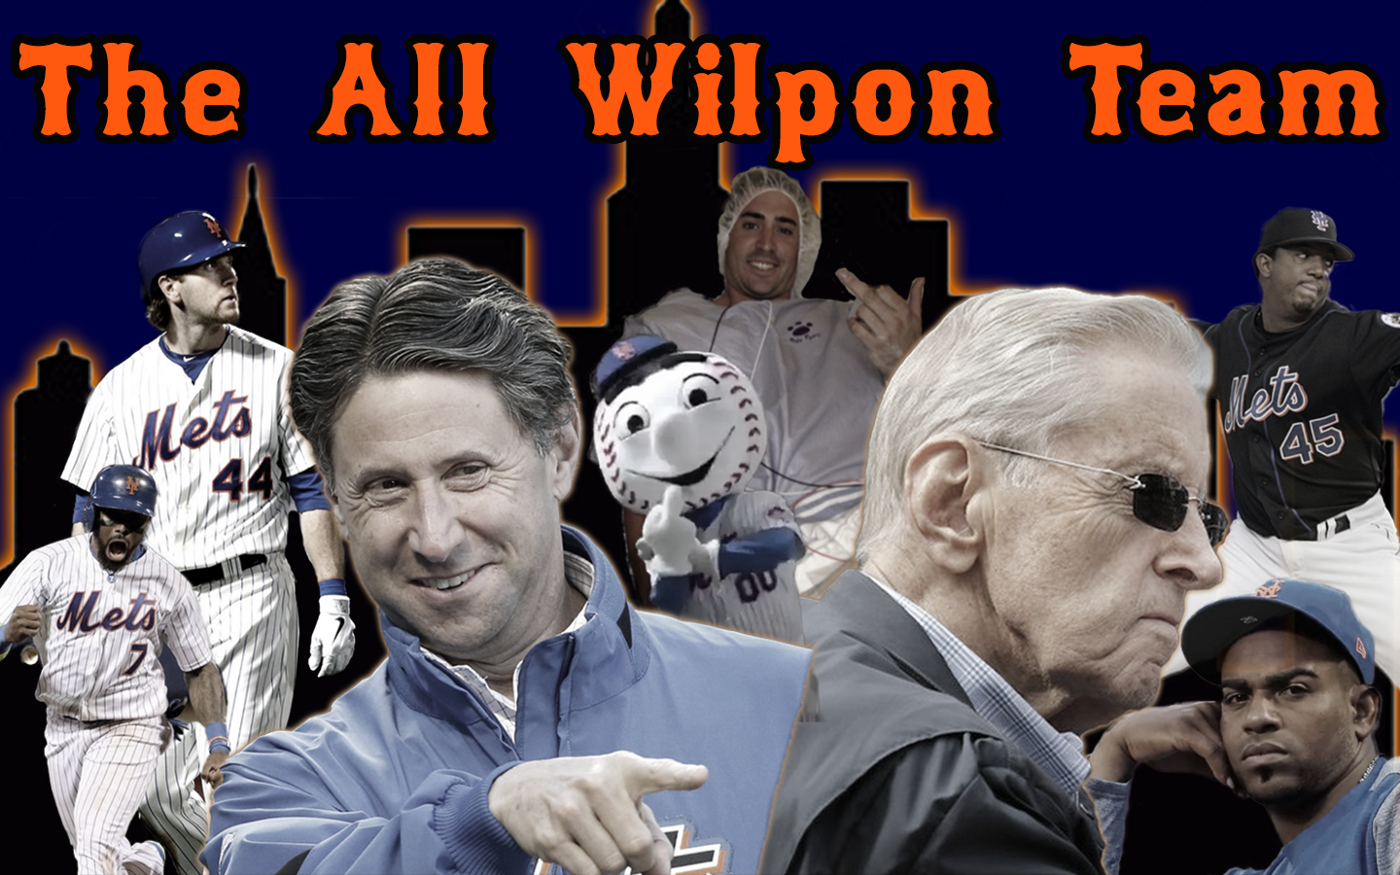 The All-Wilpon Team graphic, featuring players from across the Wilpon era